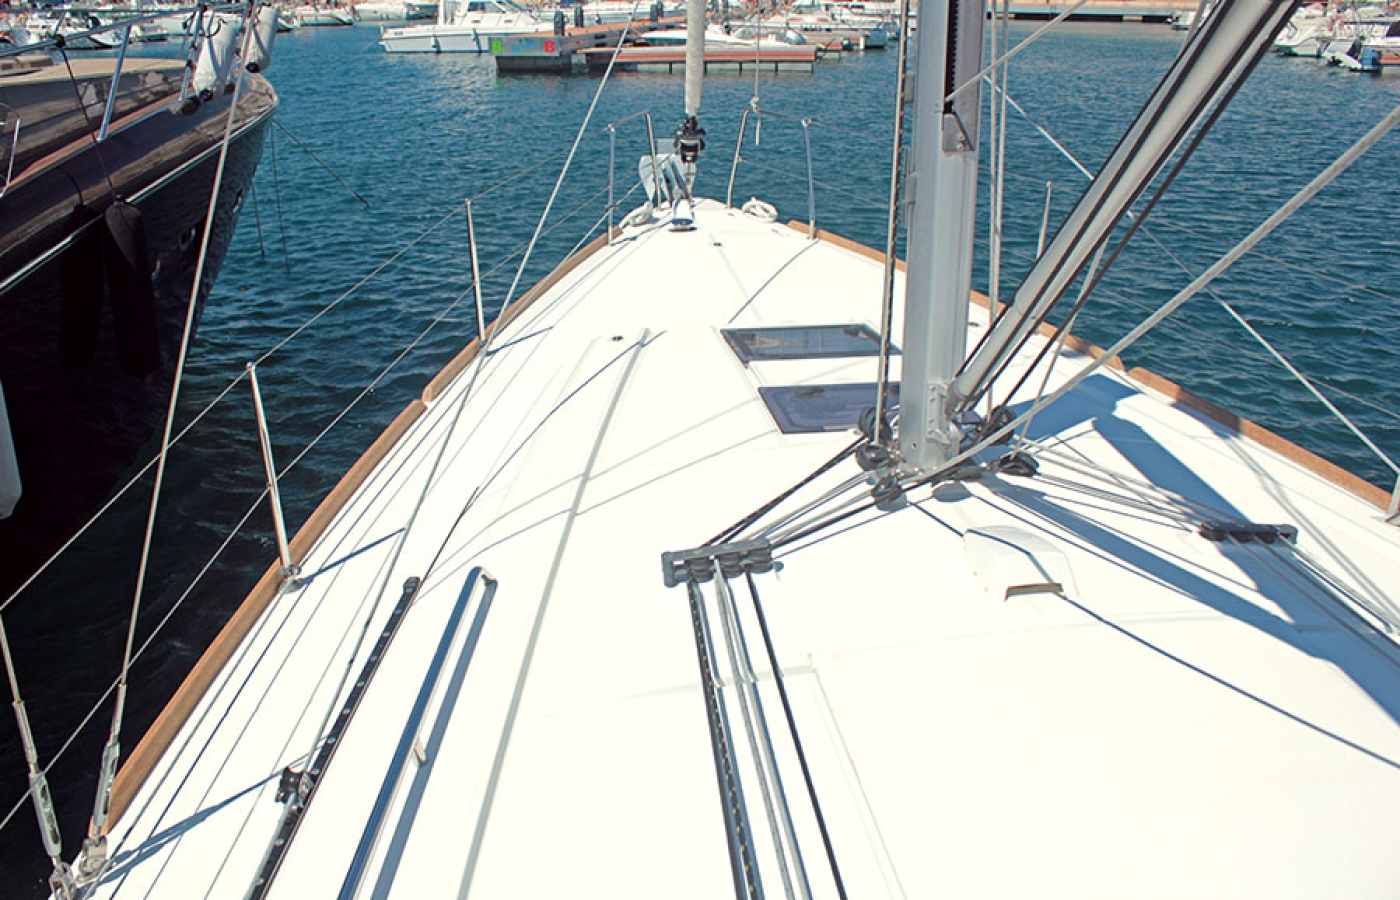 Bow of the Beneteau Oceanis 38.1. FREEDOM